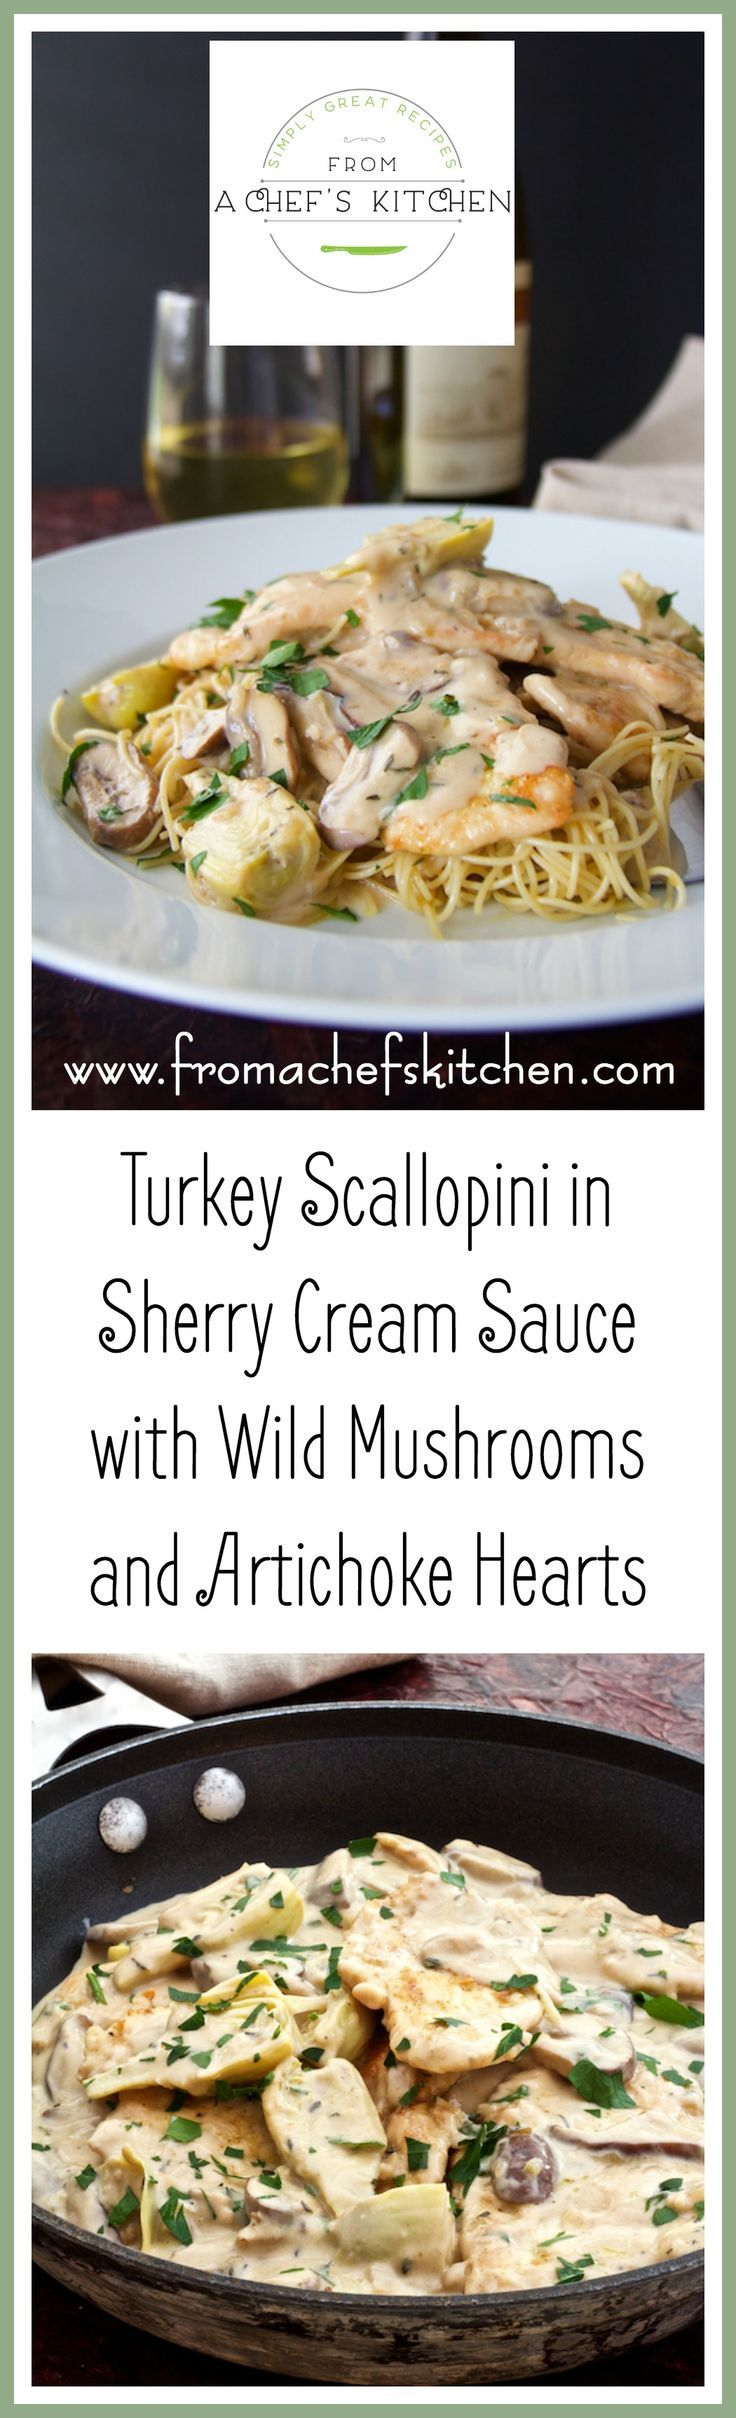 Turkey Scallopini in Sherry Cream Sauce with Wild Mushrooms and Artichoke Hearts is a lovely dinner for two and perfect for any occasion.